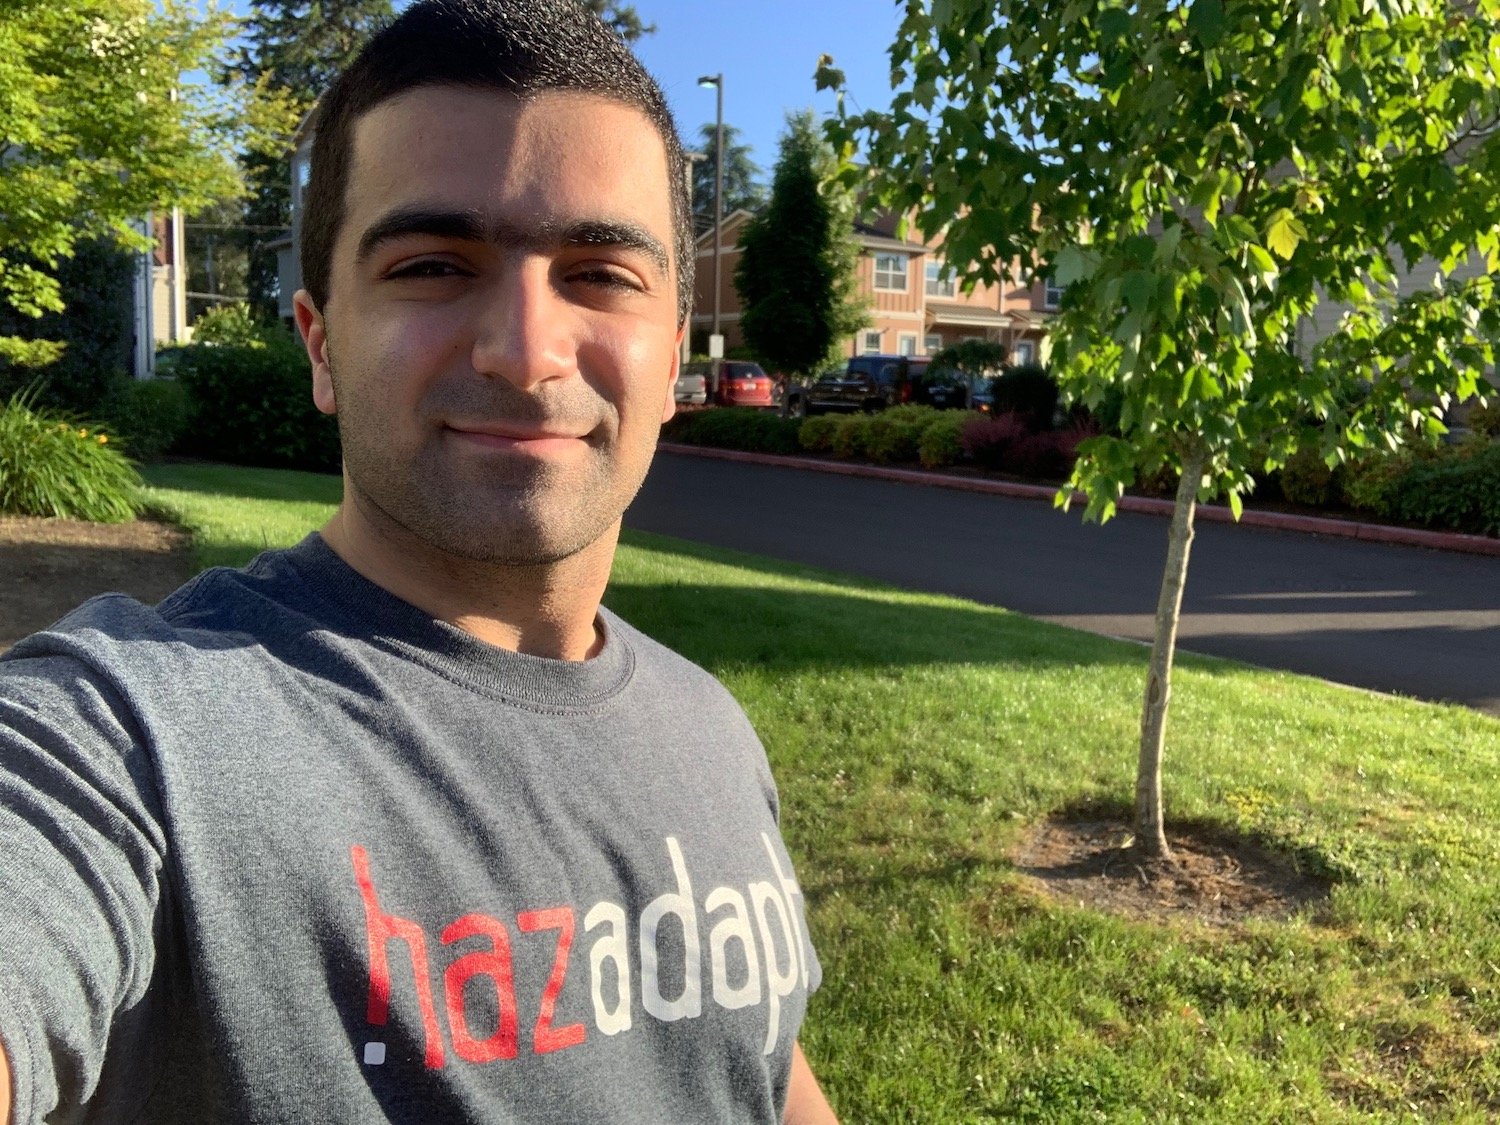 HazAdapt's co-founder and COO Omeed.